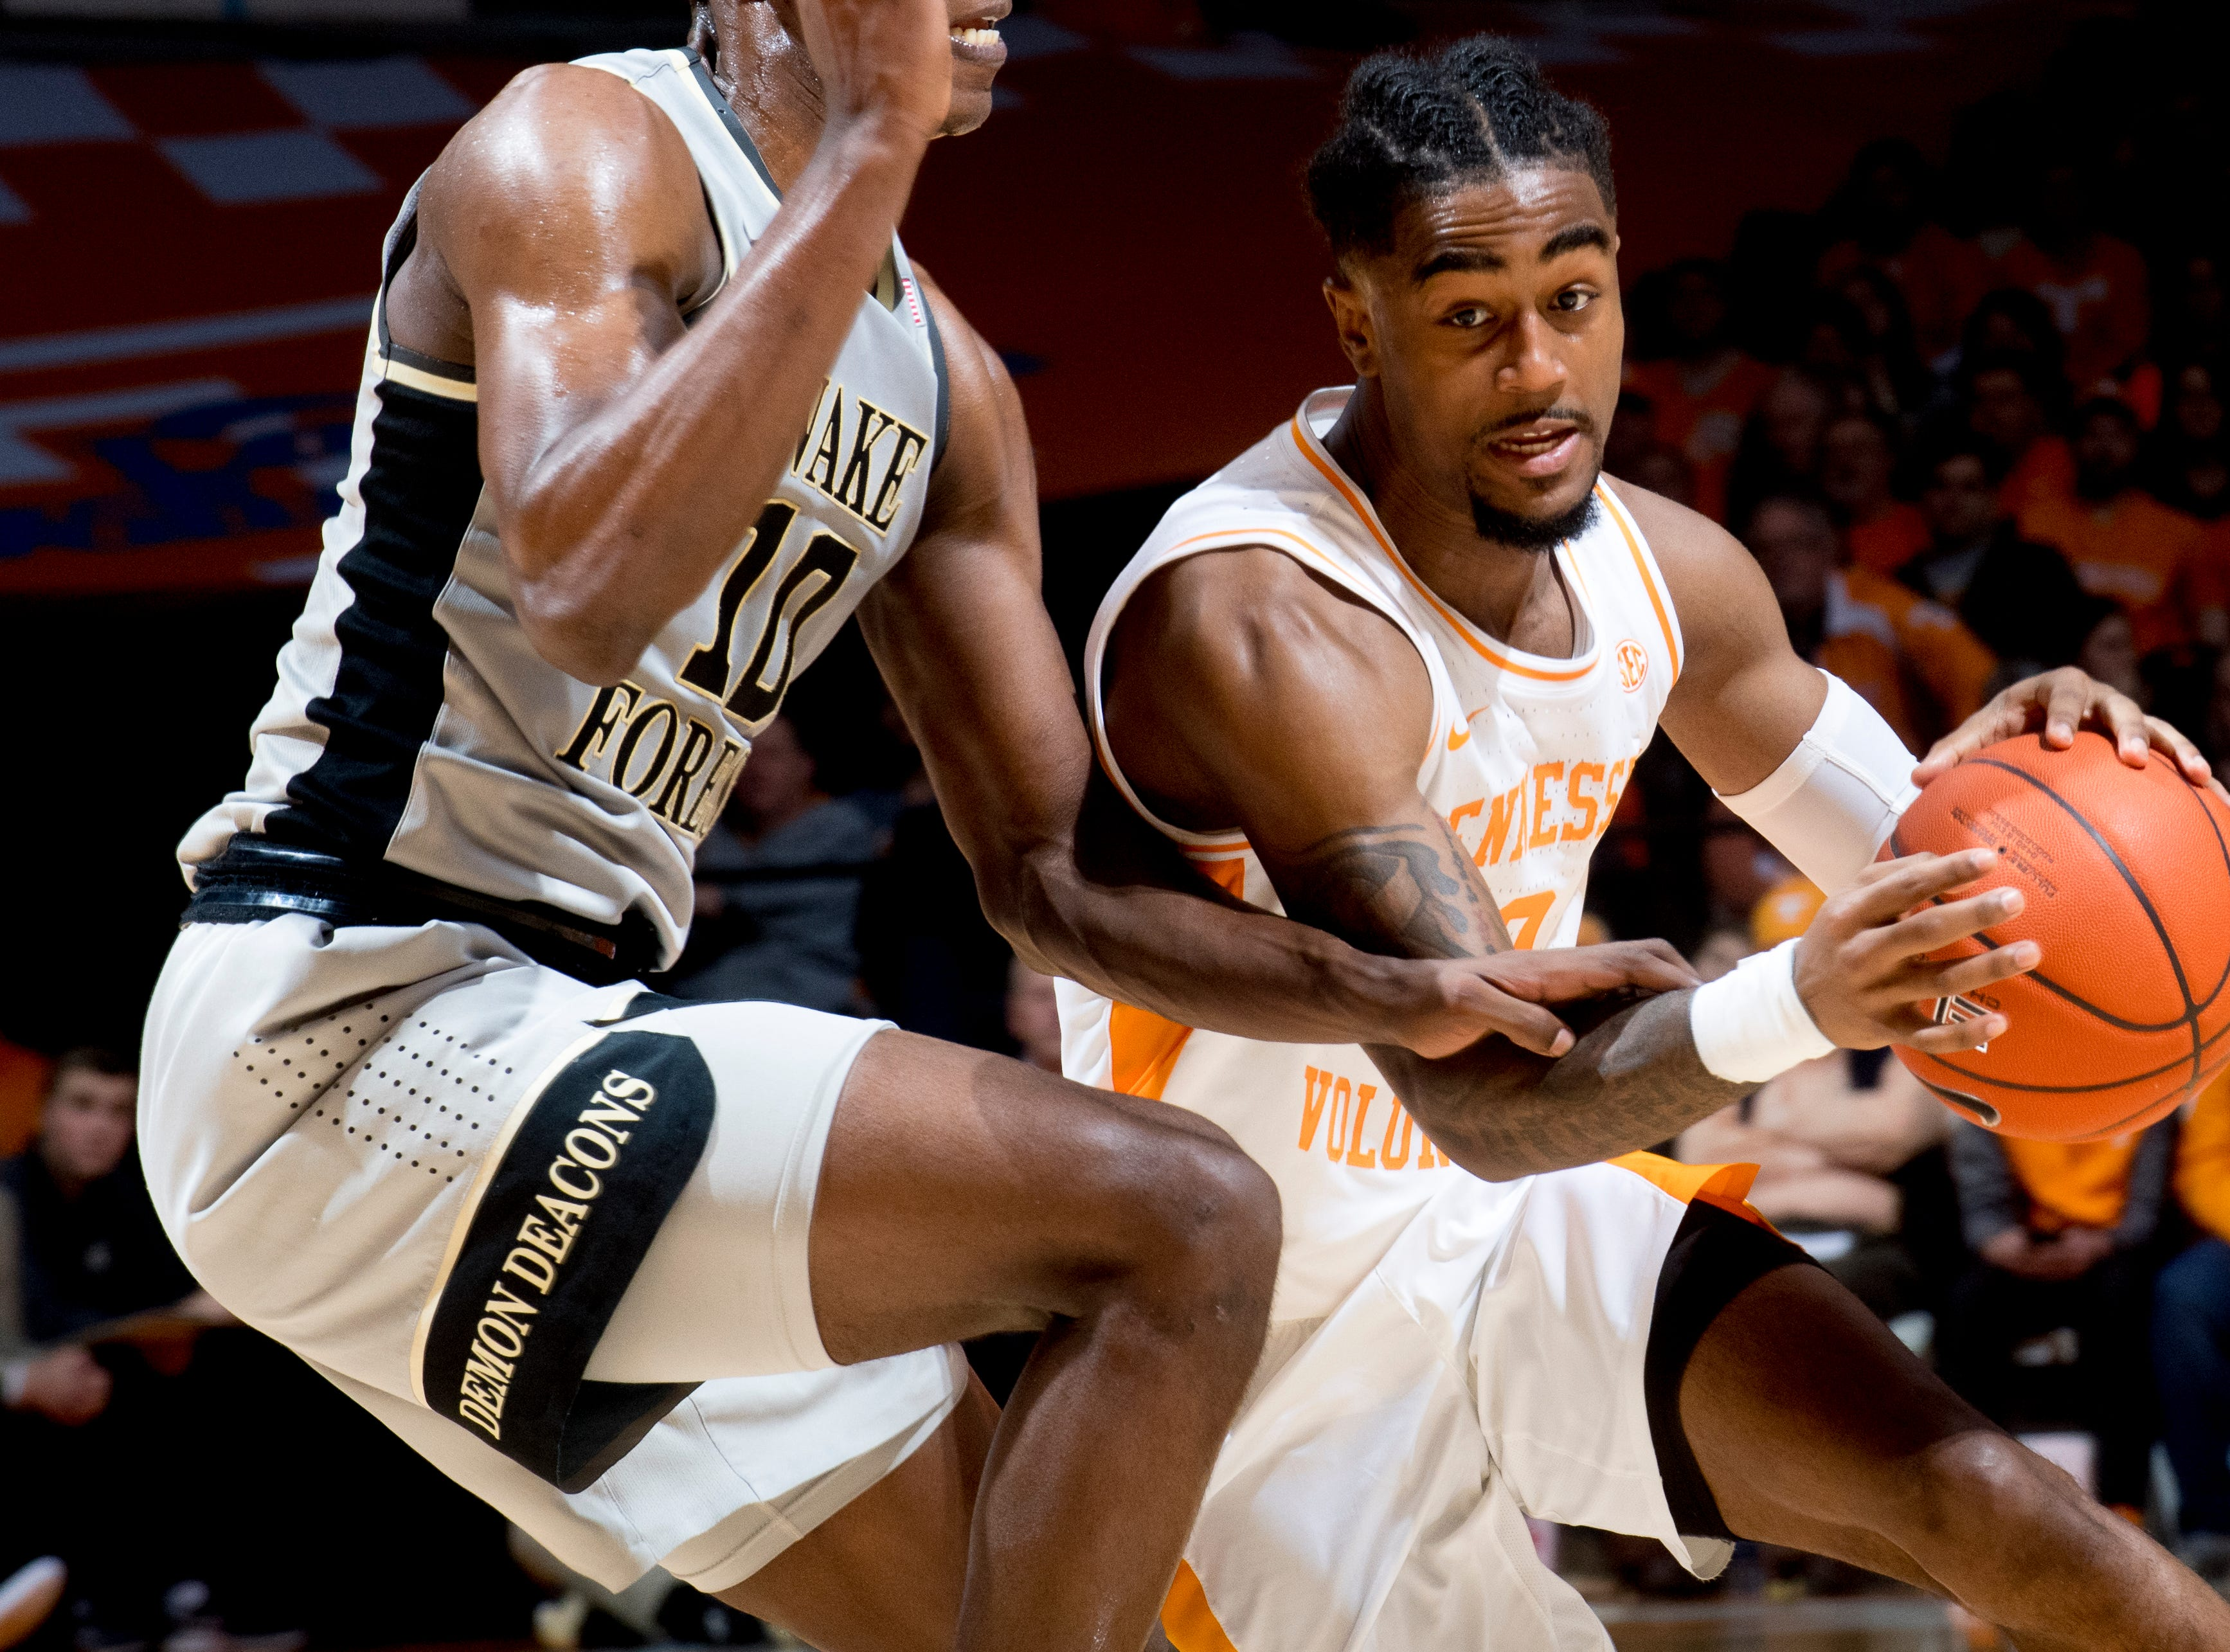 Tennessee guard Jordan Bone (0) dribbles past Wake Forest forward Jaylen Hoard (10) during a game between Tennessee and Wake Forest at Thompson-Boling Arena in Knoxville, Tennessee on Saturday, December 22, 2018.